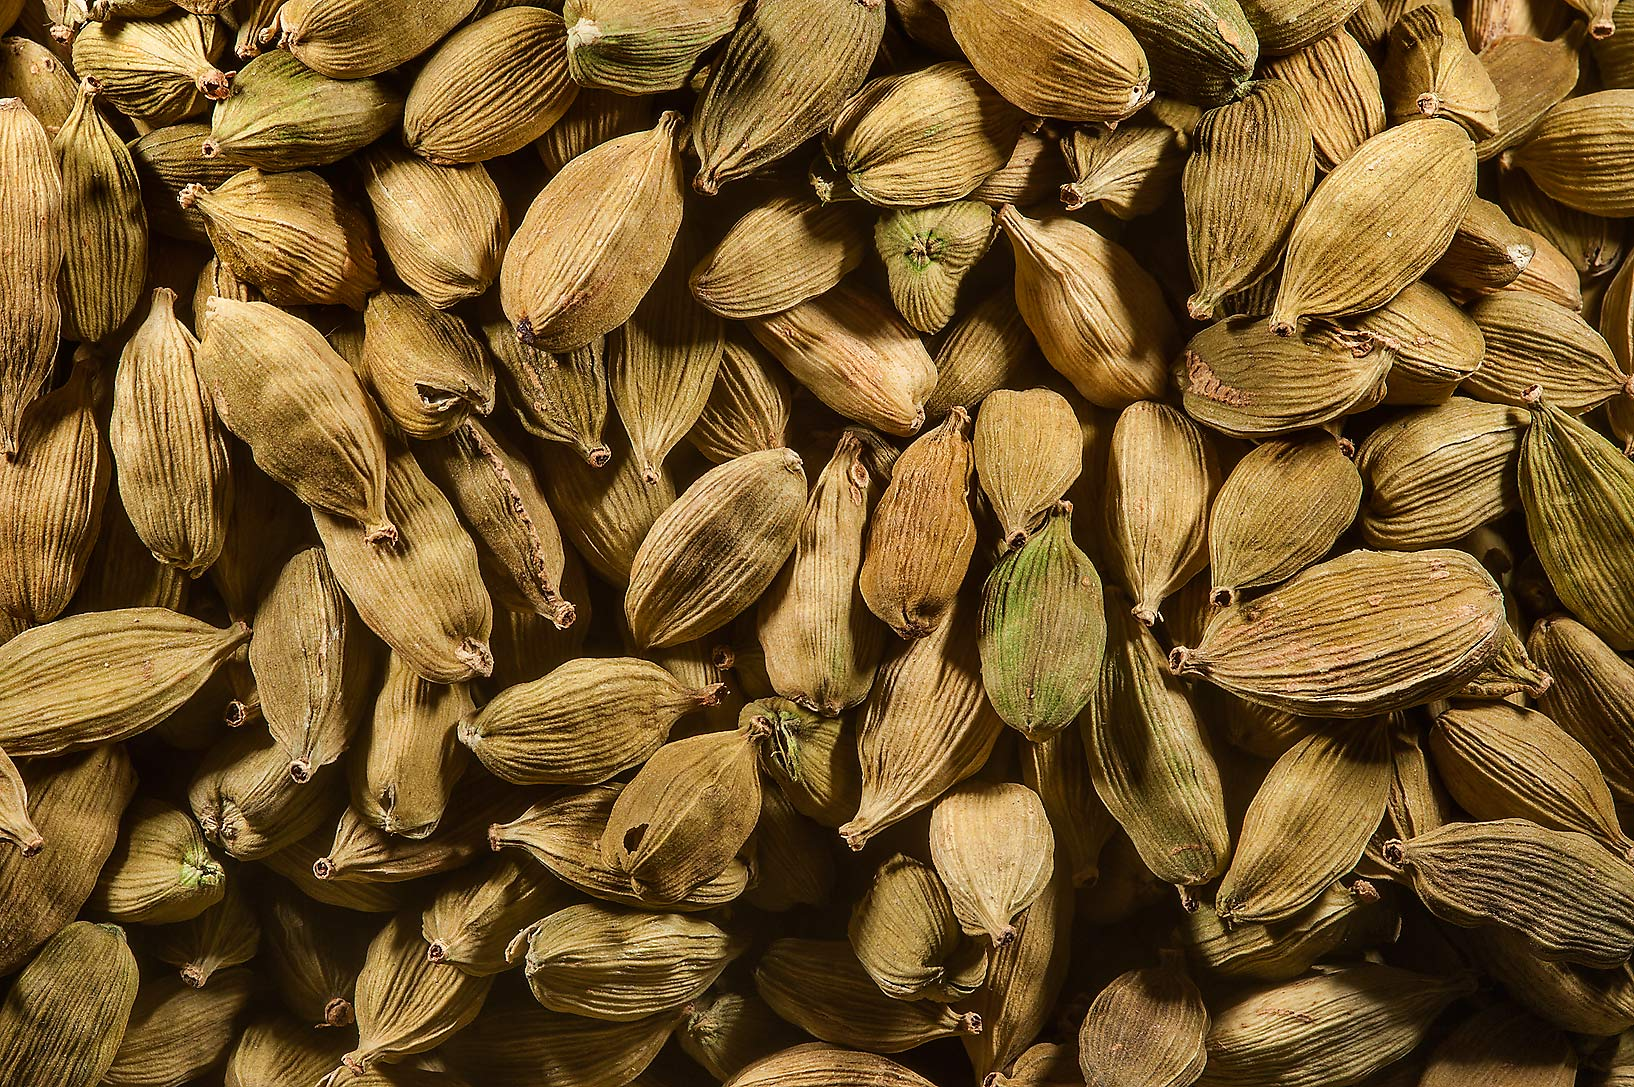 Cardamom in spice section in Souq Waqif (Old Market). Doha, Qatar